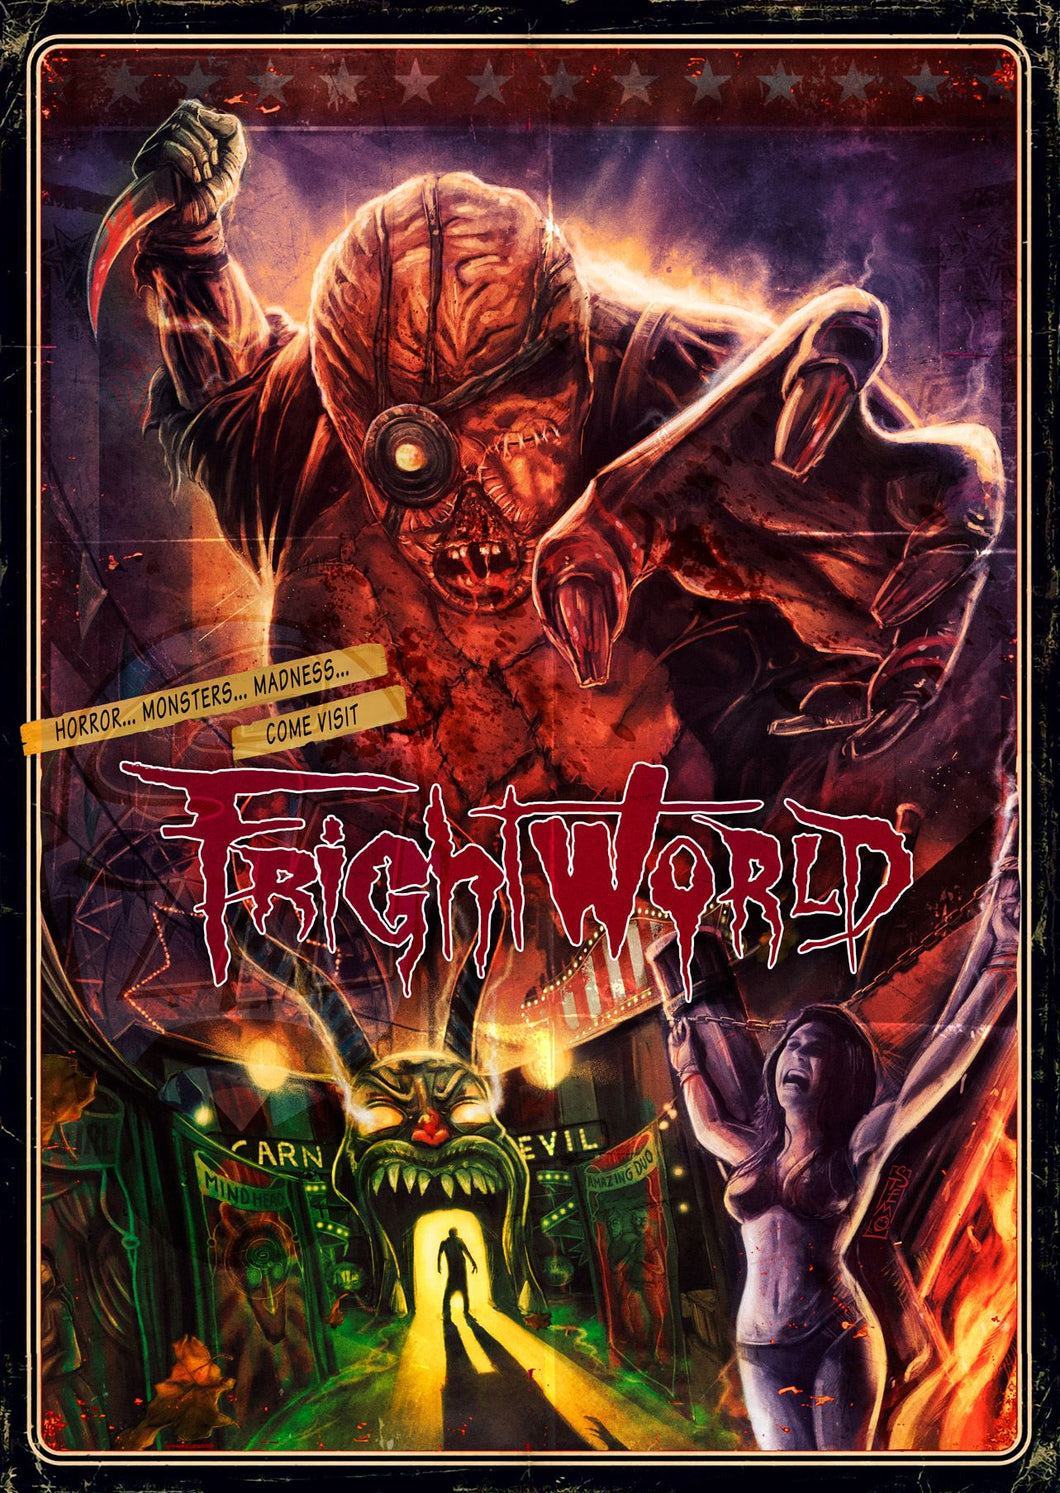 Frightworld Bluray